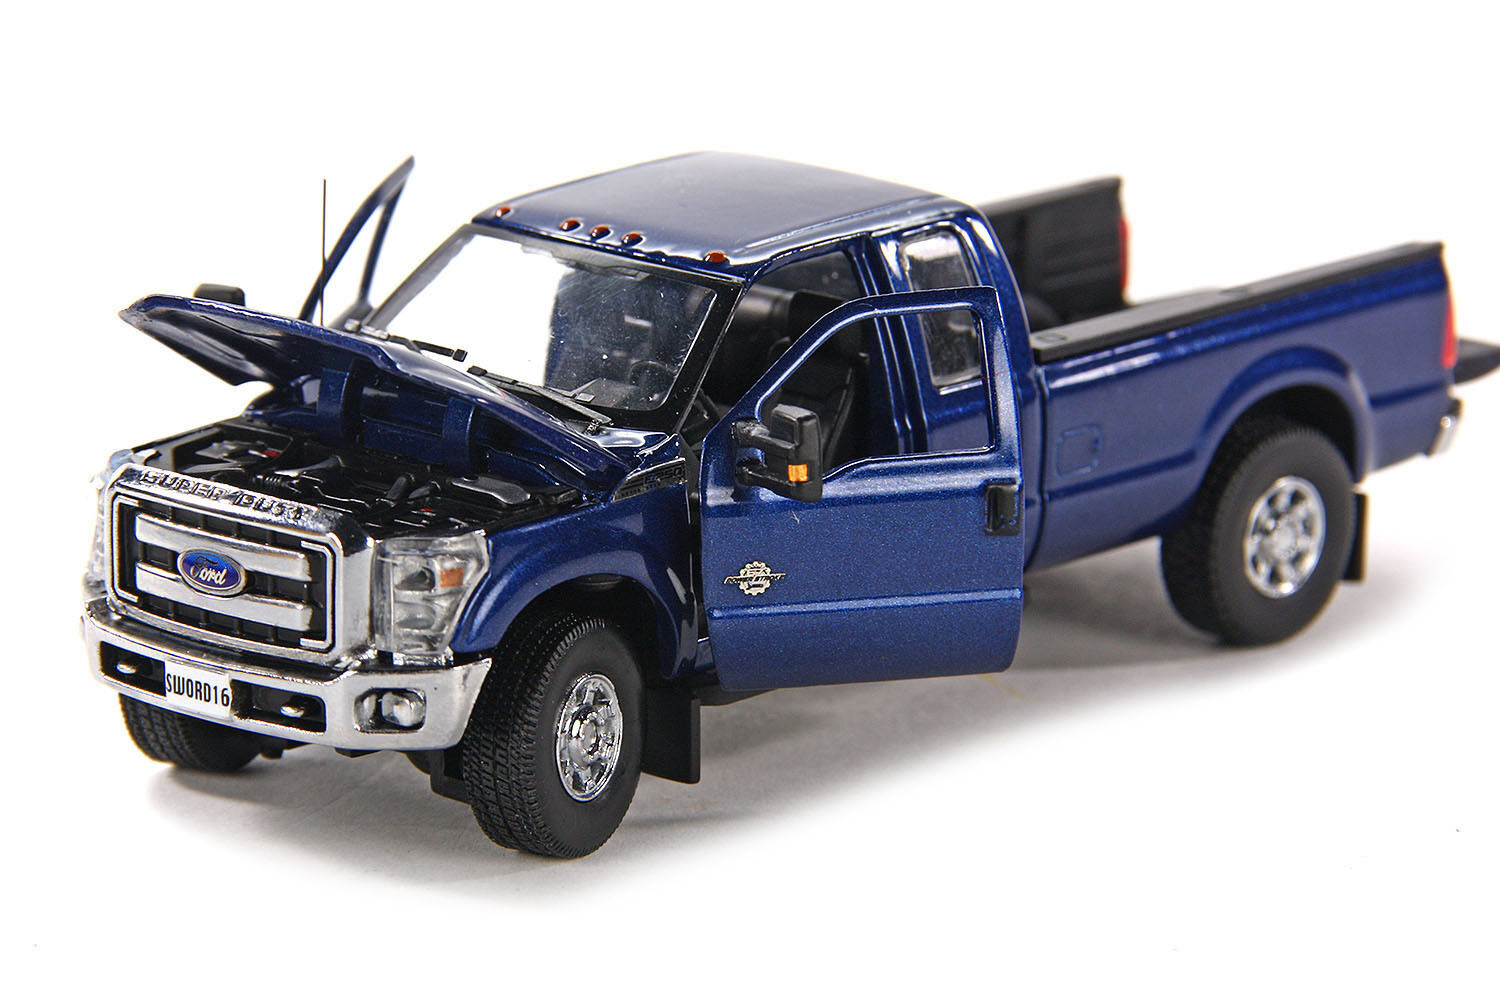 Ford F250 Super Cab 8 Ft Bed -  Blau  - Chrome Wheels - 1 50 - Sword  SW1100B